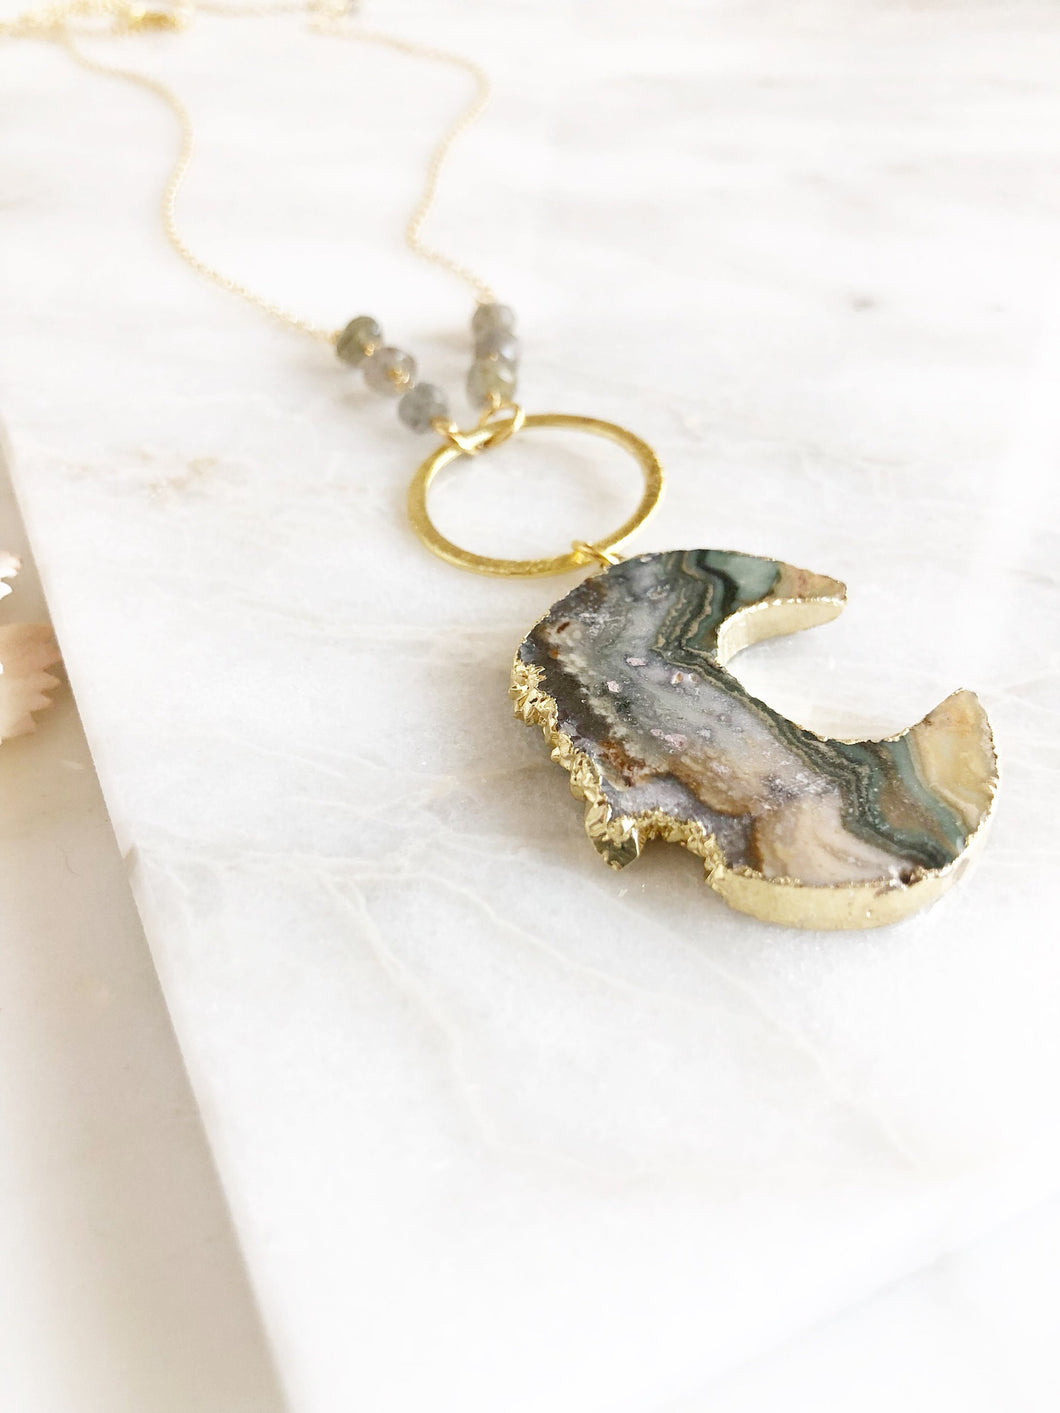 Long Amethyst Raw Crystal Necklace in Gold. Long Raw Stone Necklace. Bohi Necklace. Bohemian Jewelry. Gift Ideas for Her.